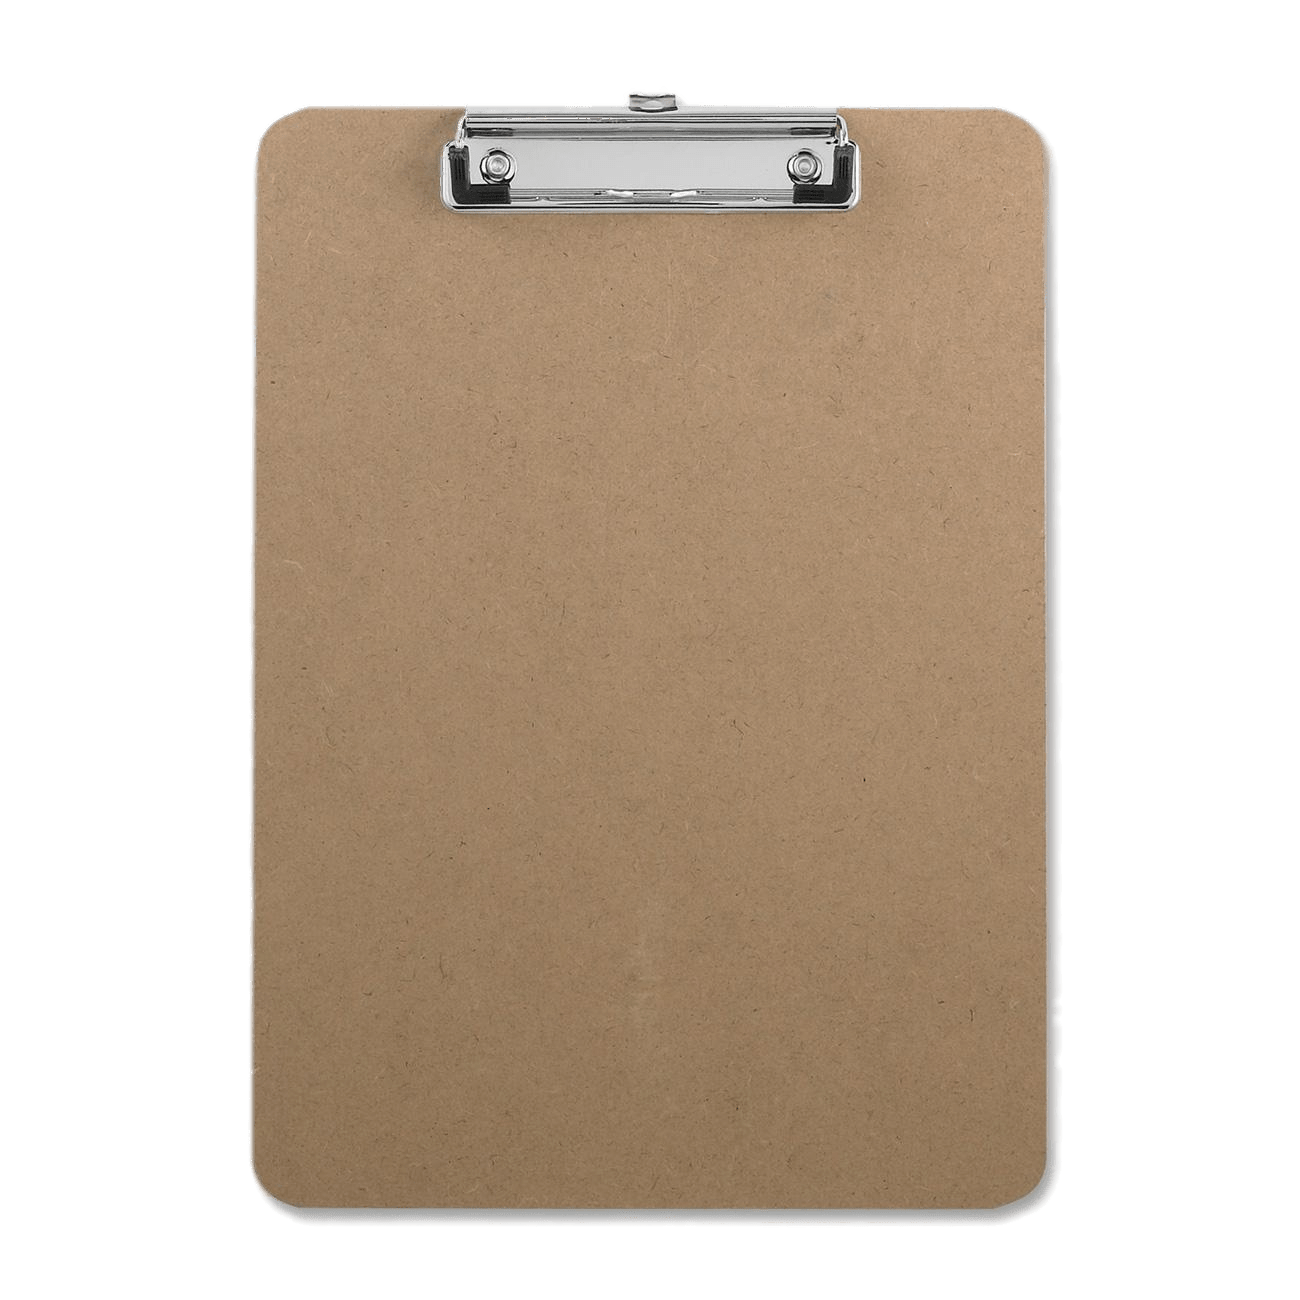 Brown Clipboard transparent PNG.